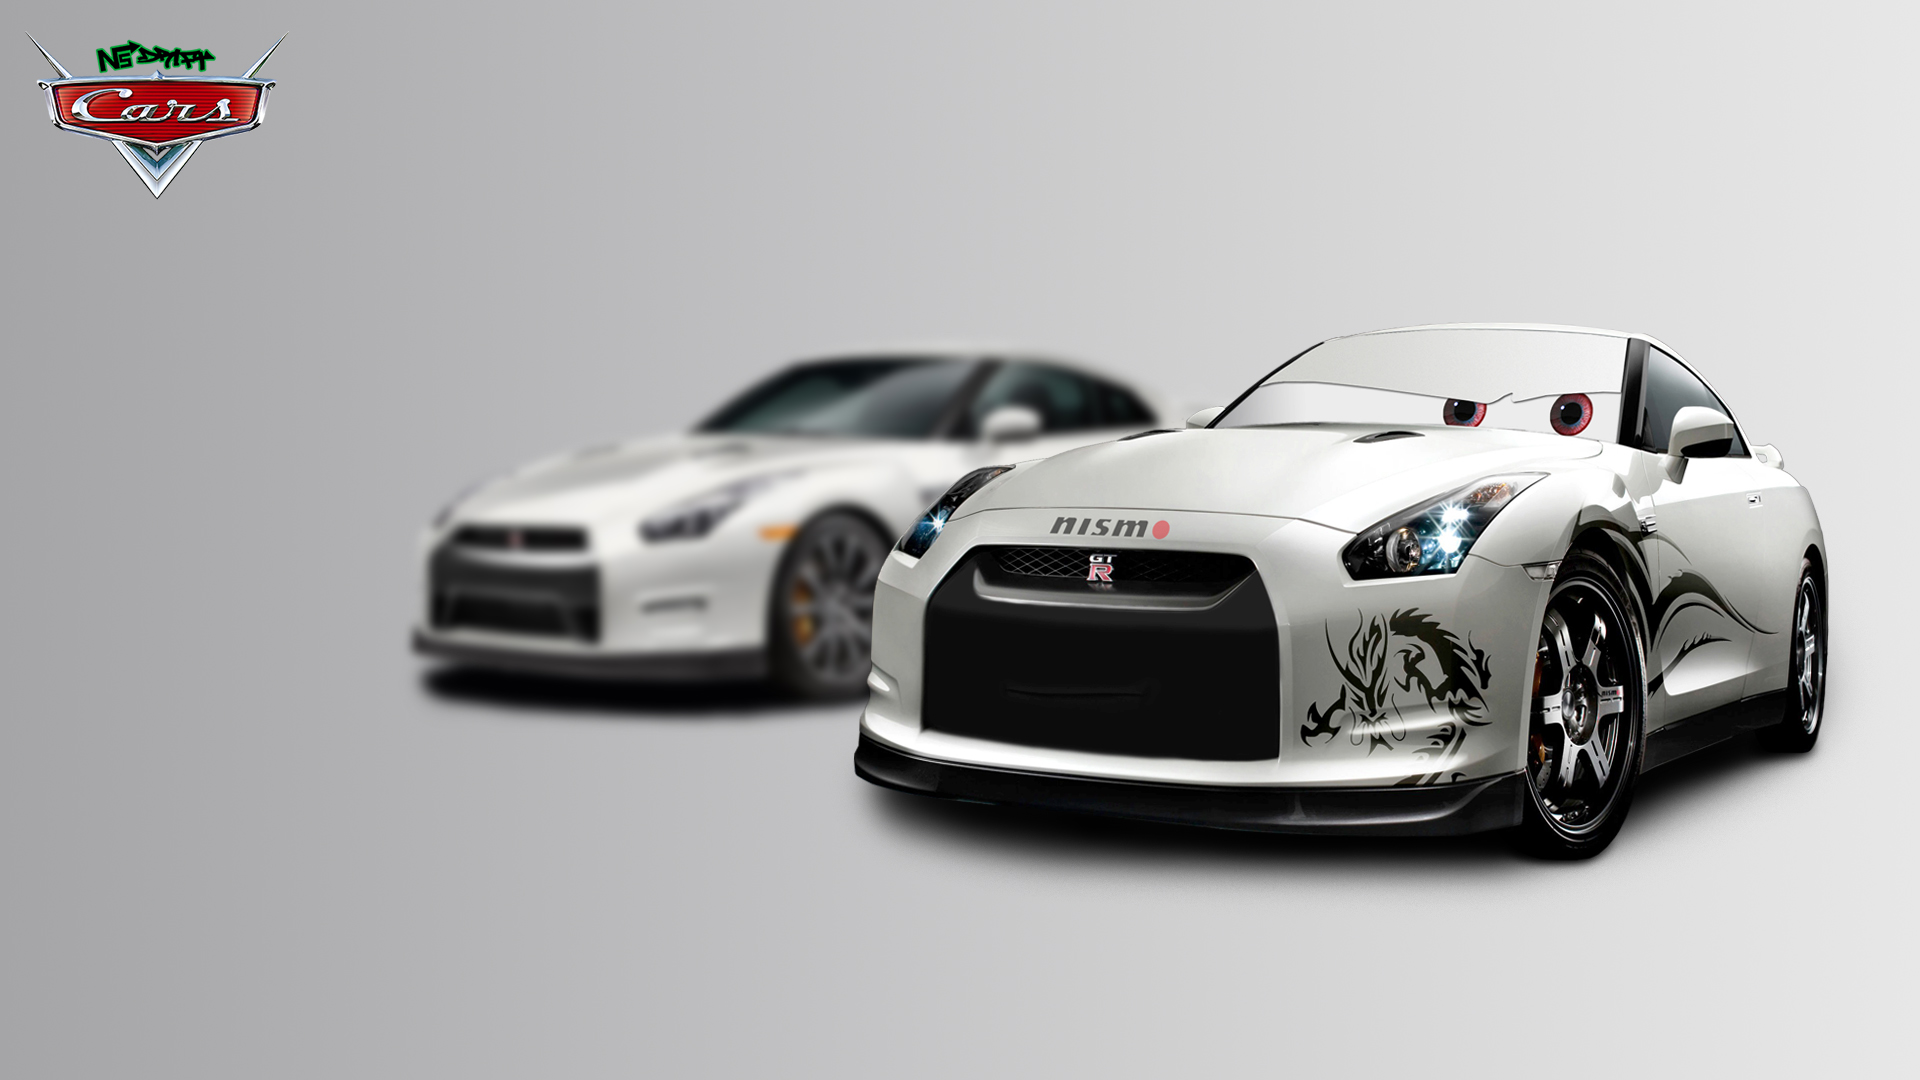 Where Is Nissan Made >> Nissan Gt R Pixar Cars Made By Me